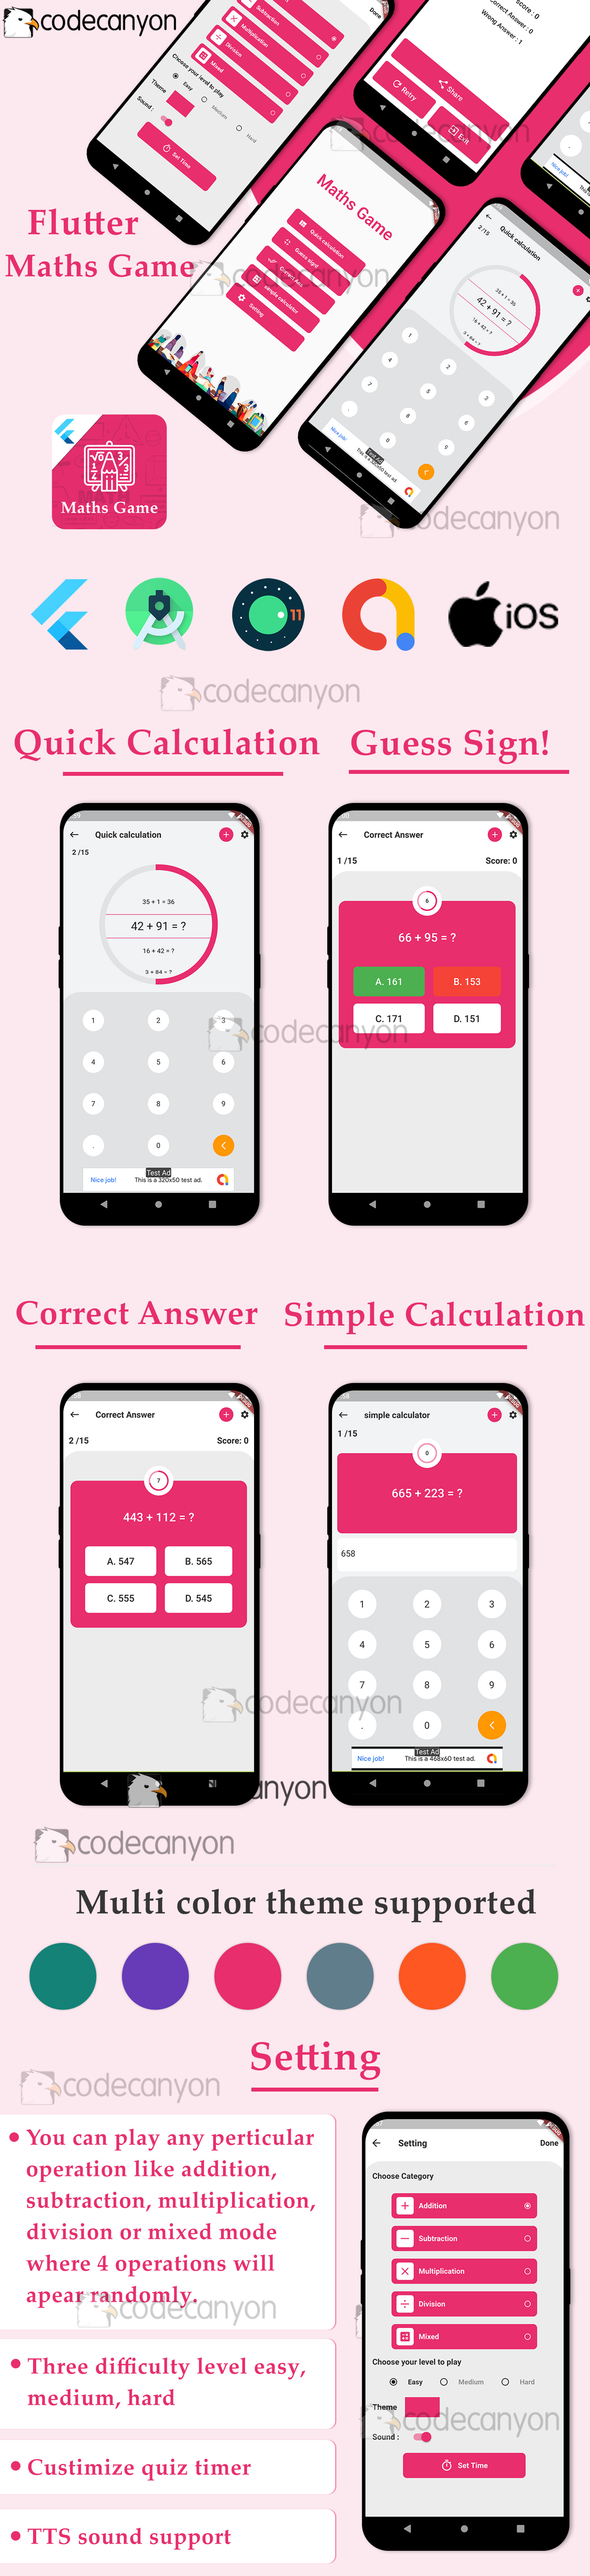 Flutter maths games 4 in 1 with admob ready to publish template - 5